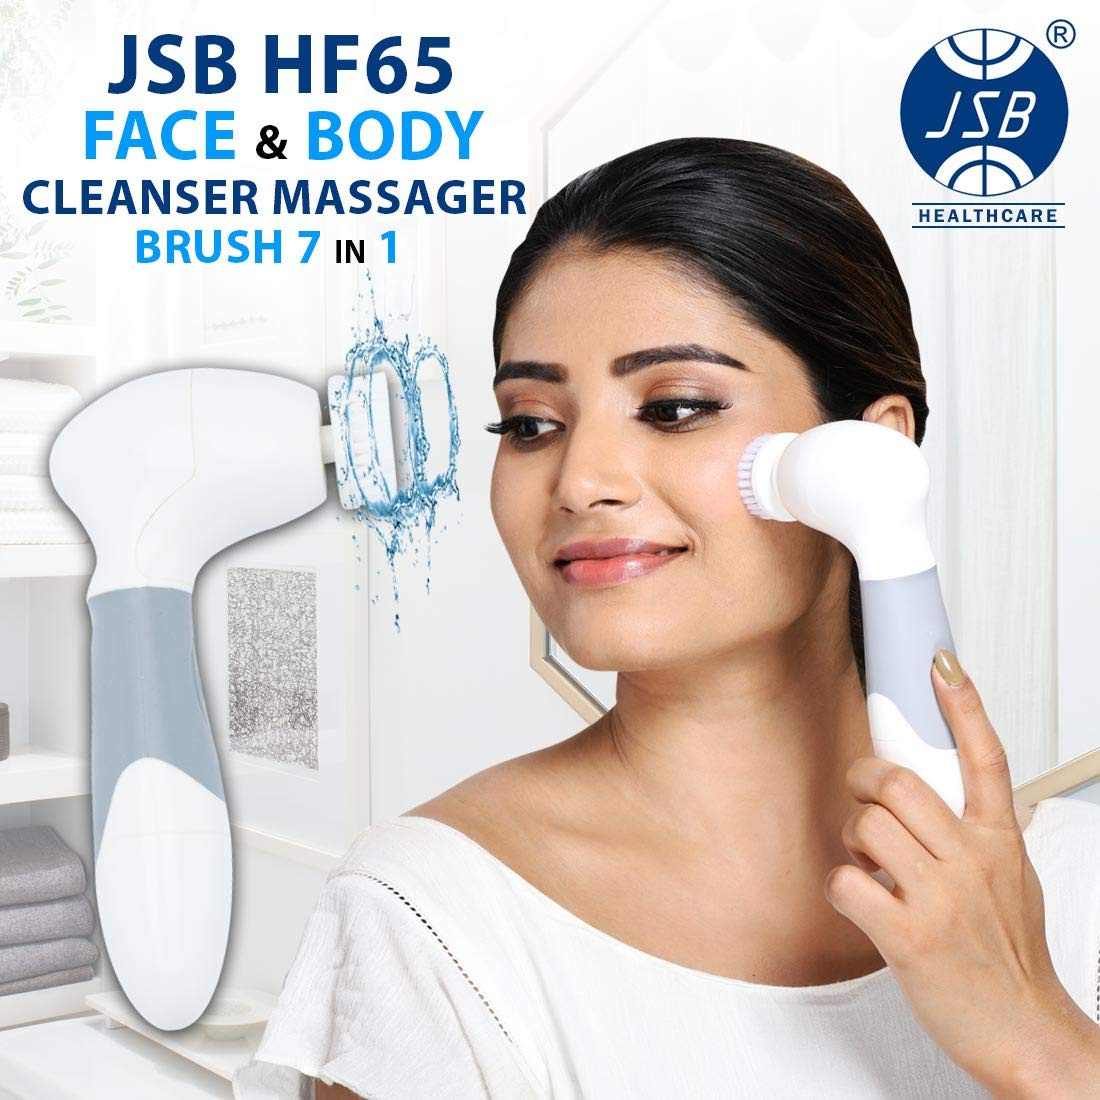 Jsb Hf65 Makeup Removal Face Body Cleanser Massager Brush Machine